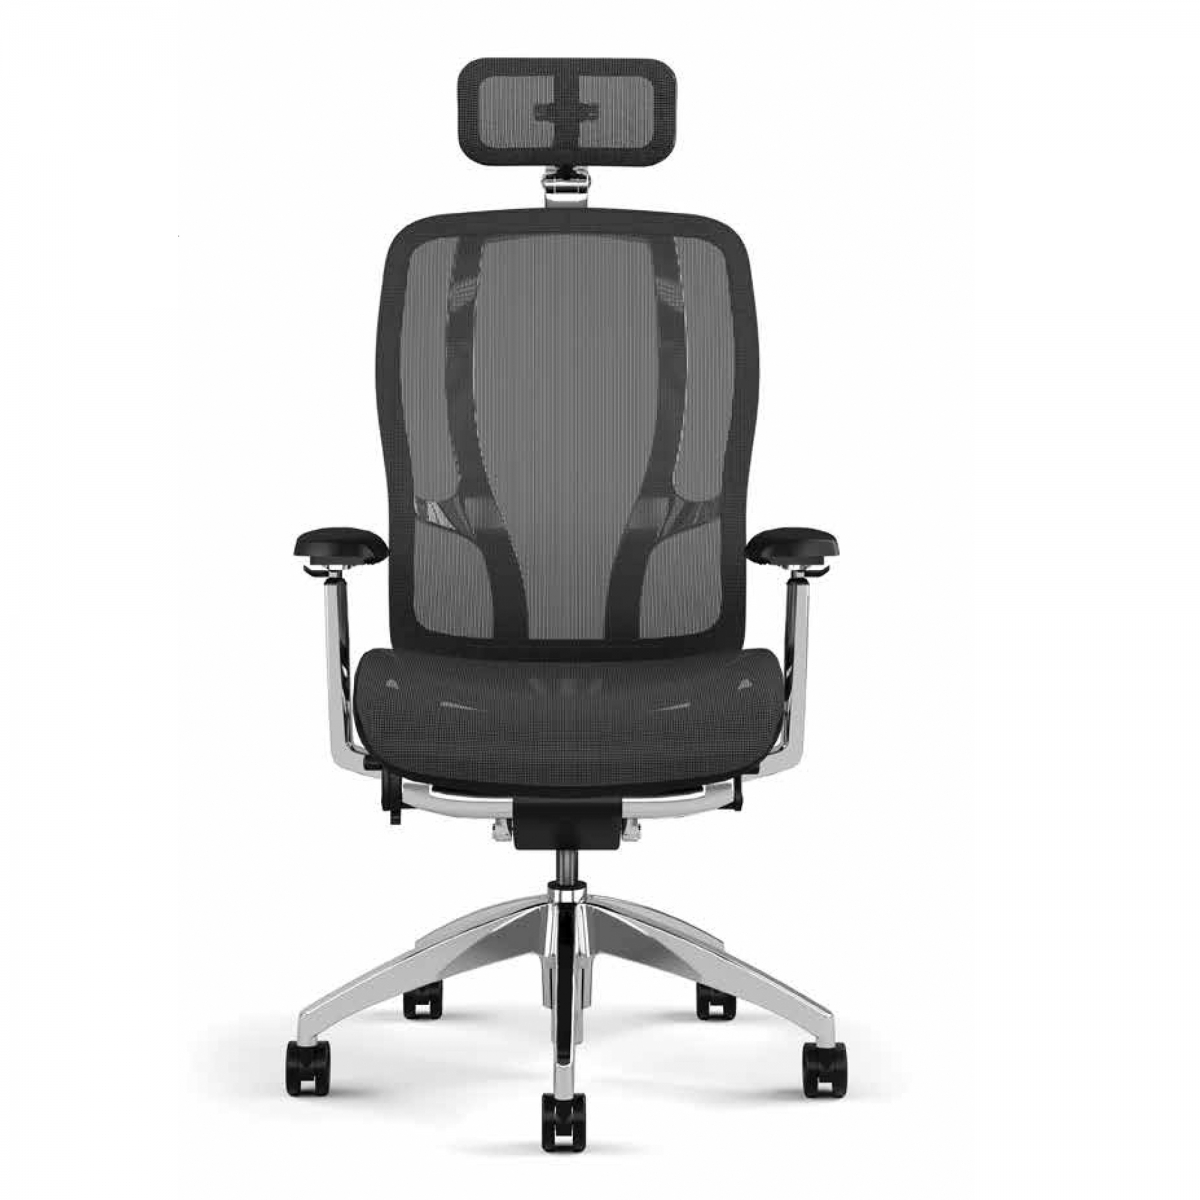 Vesta Executive Ergonomic Mesh Chair